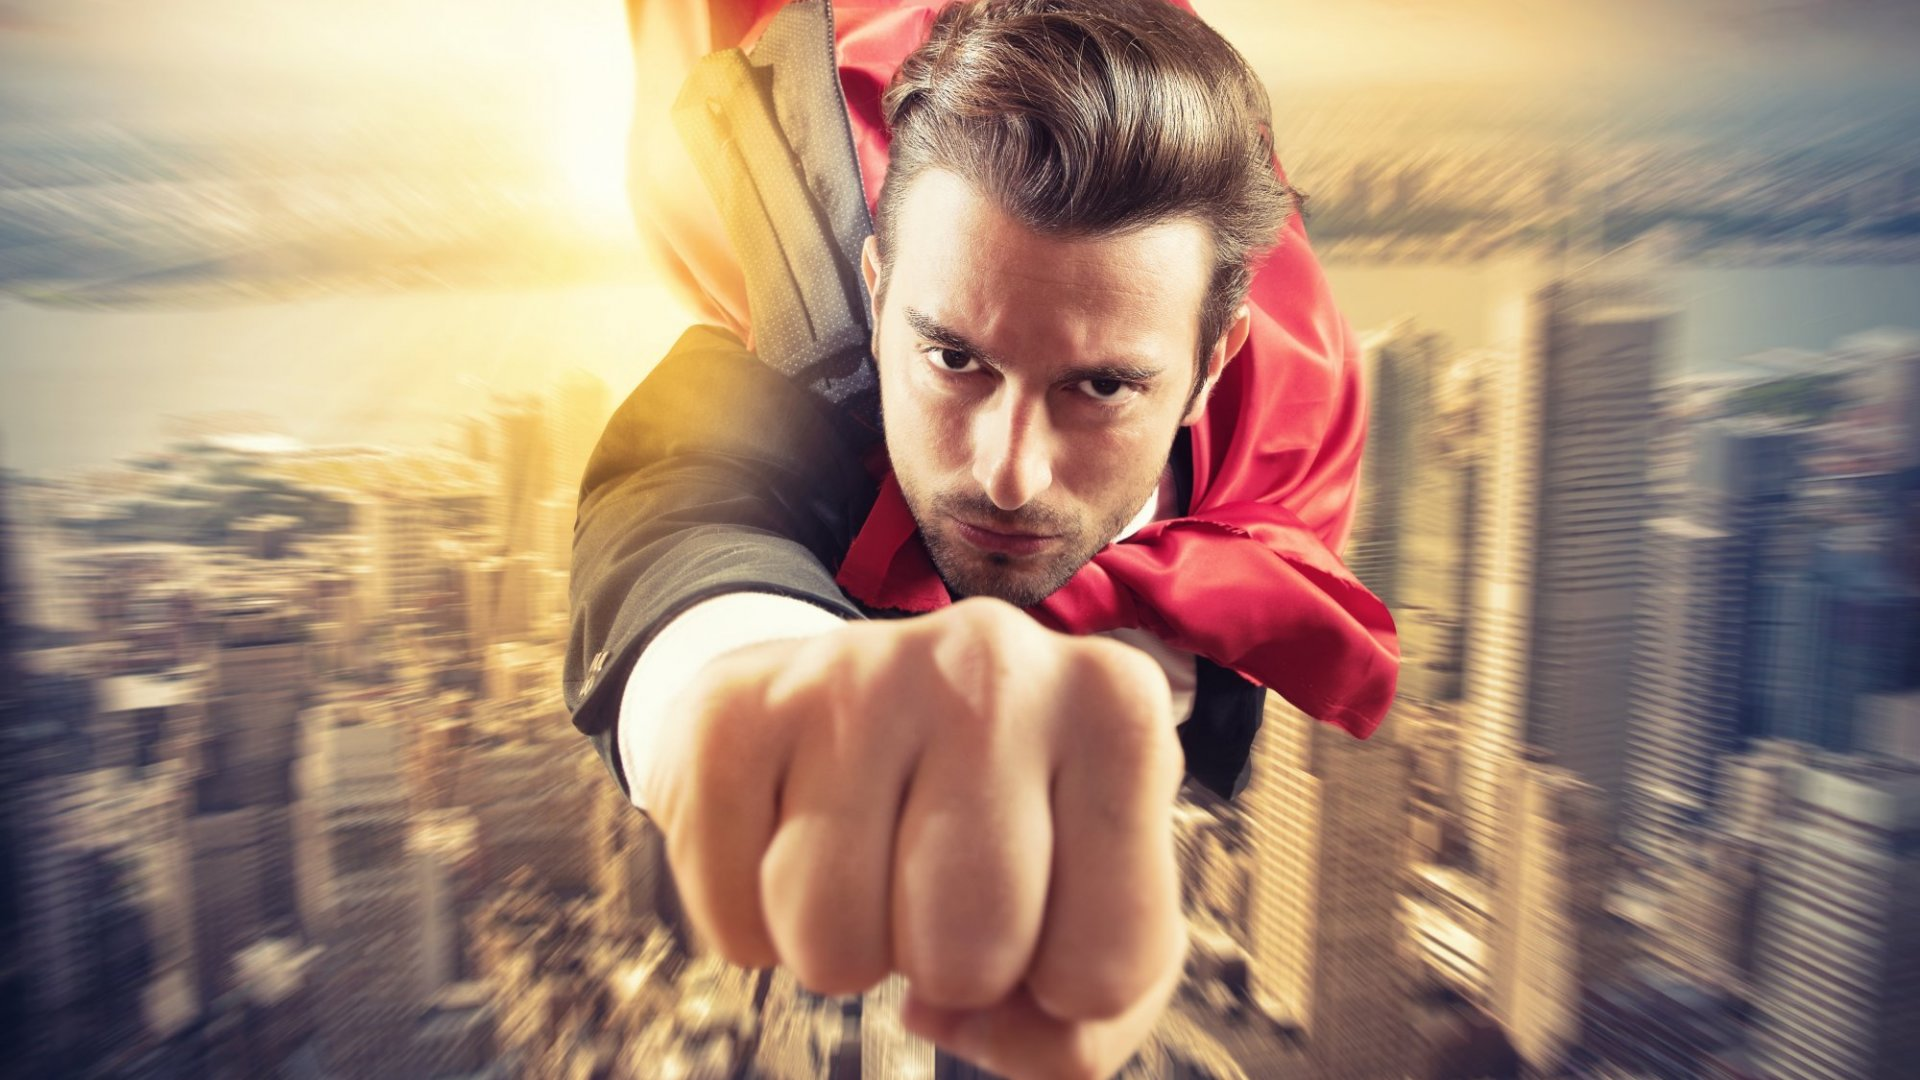 5 Life-Altering Things That Will Happen When You Own Your Superpower